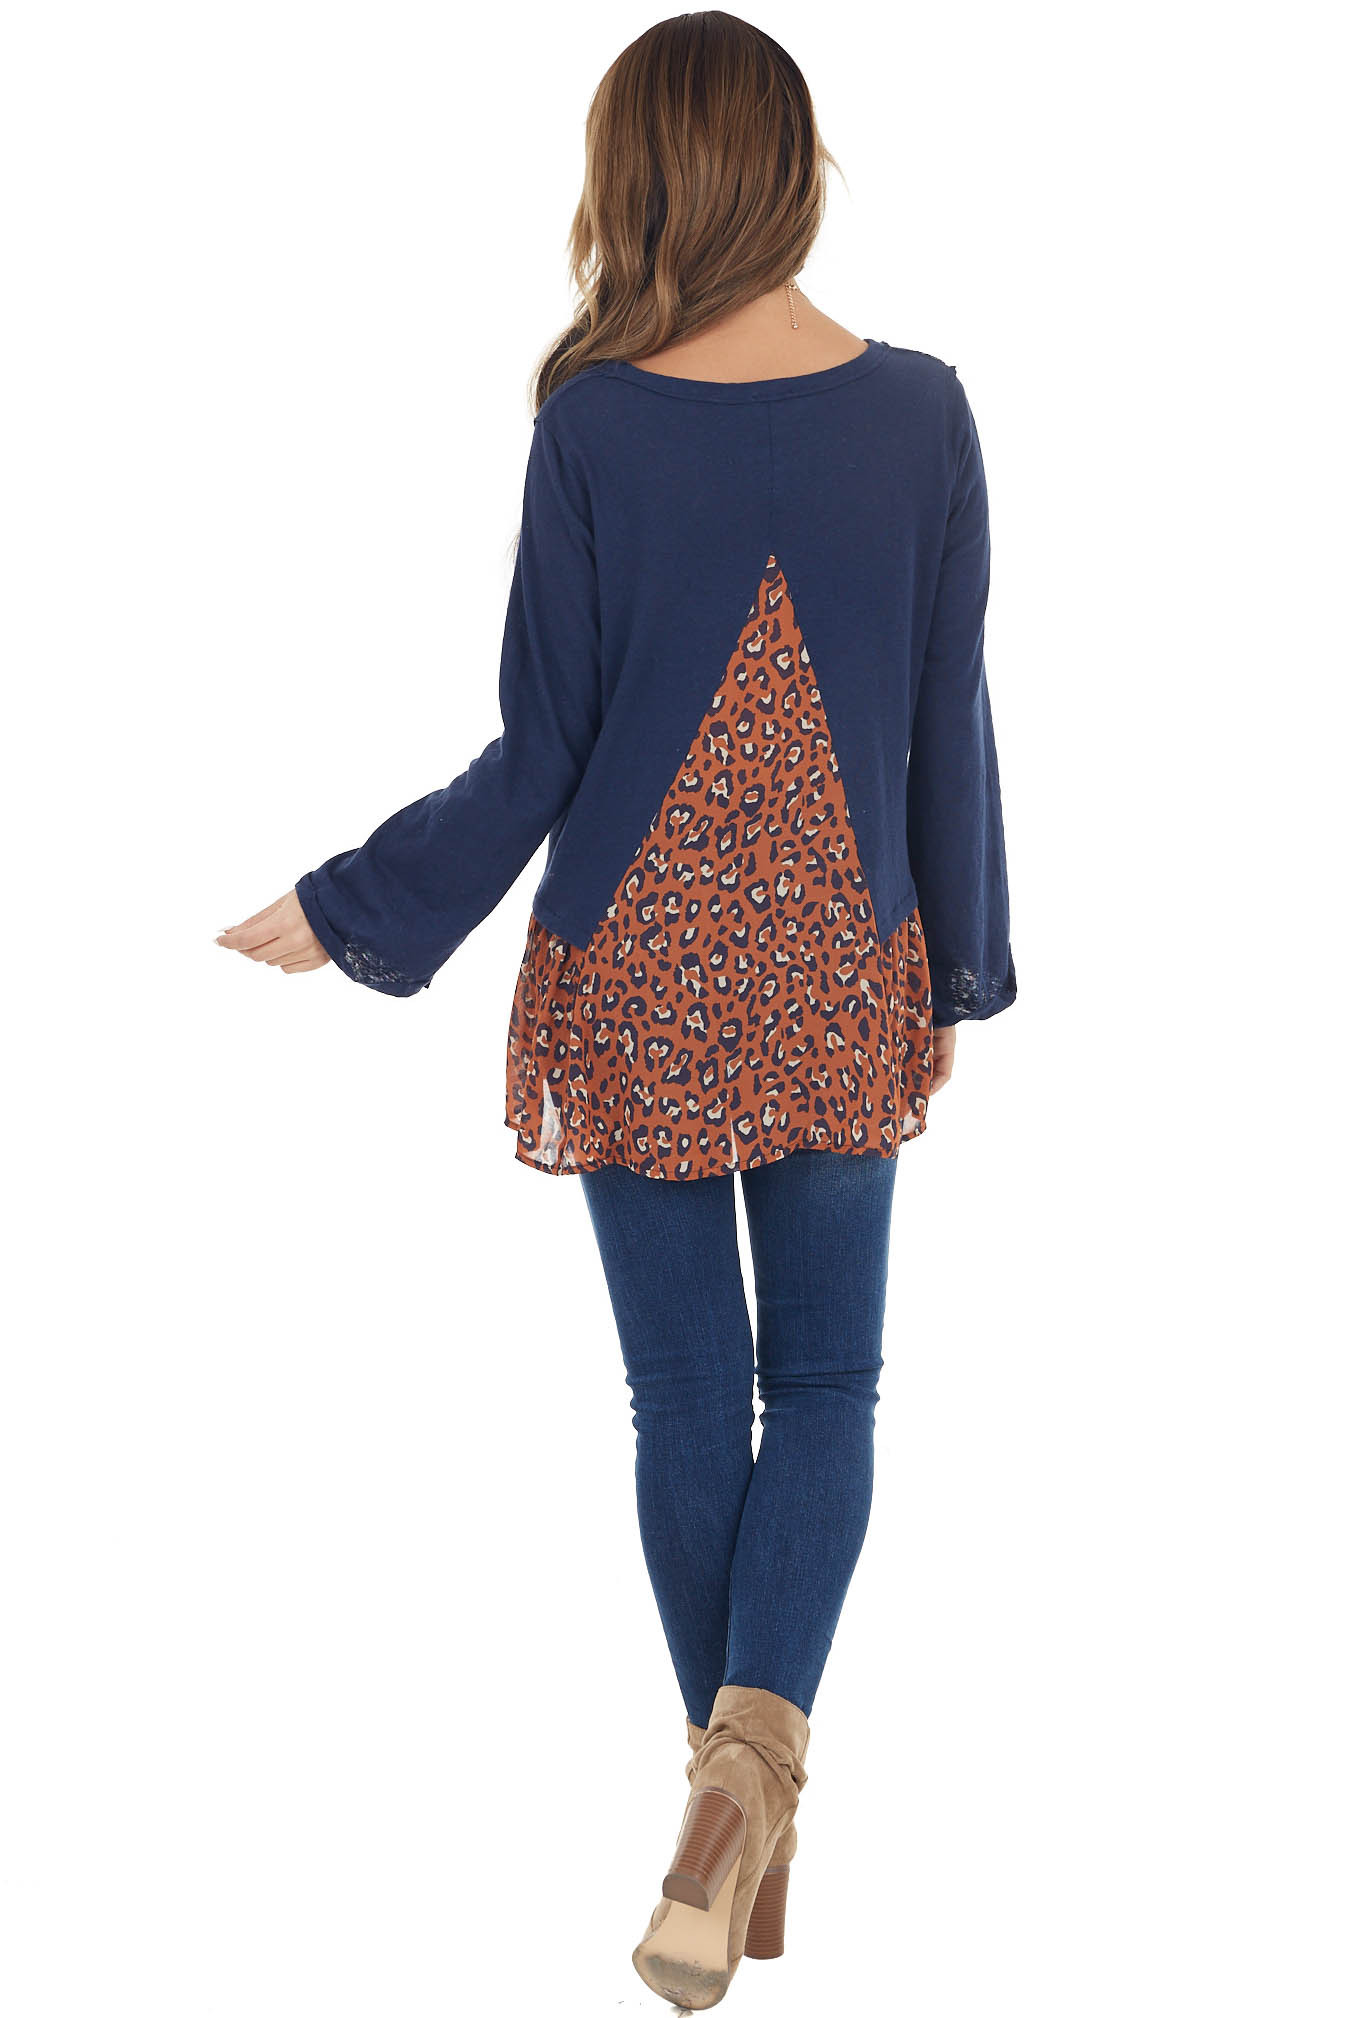 Navy Leopard Print Peplum Top with Raw Edge Details